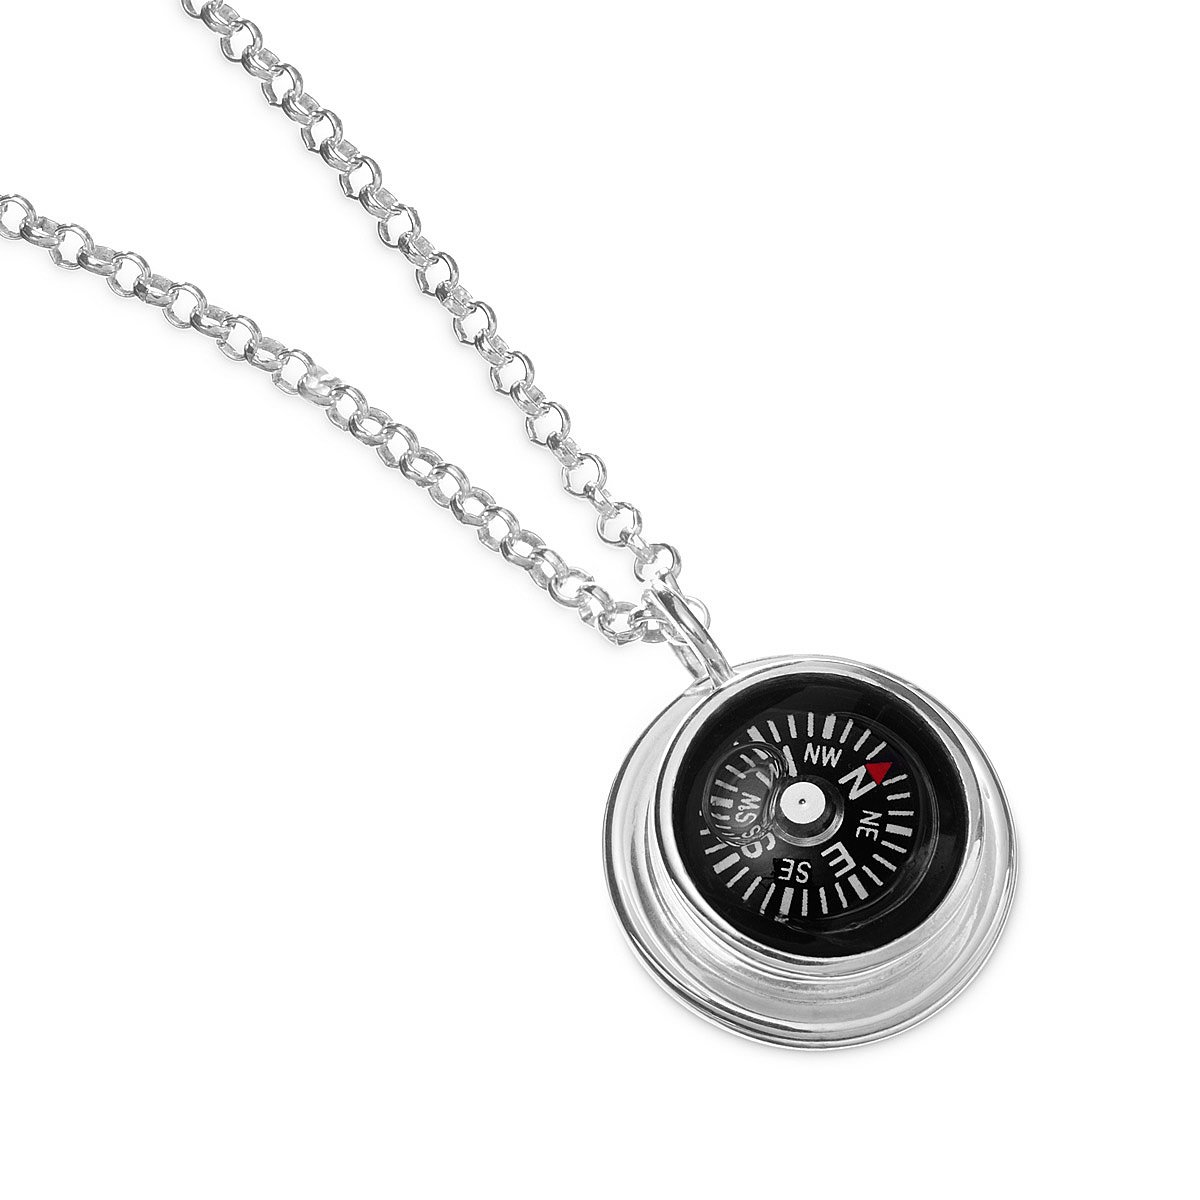 jm medeiros front necklace may cape compass john product seaweeds